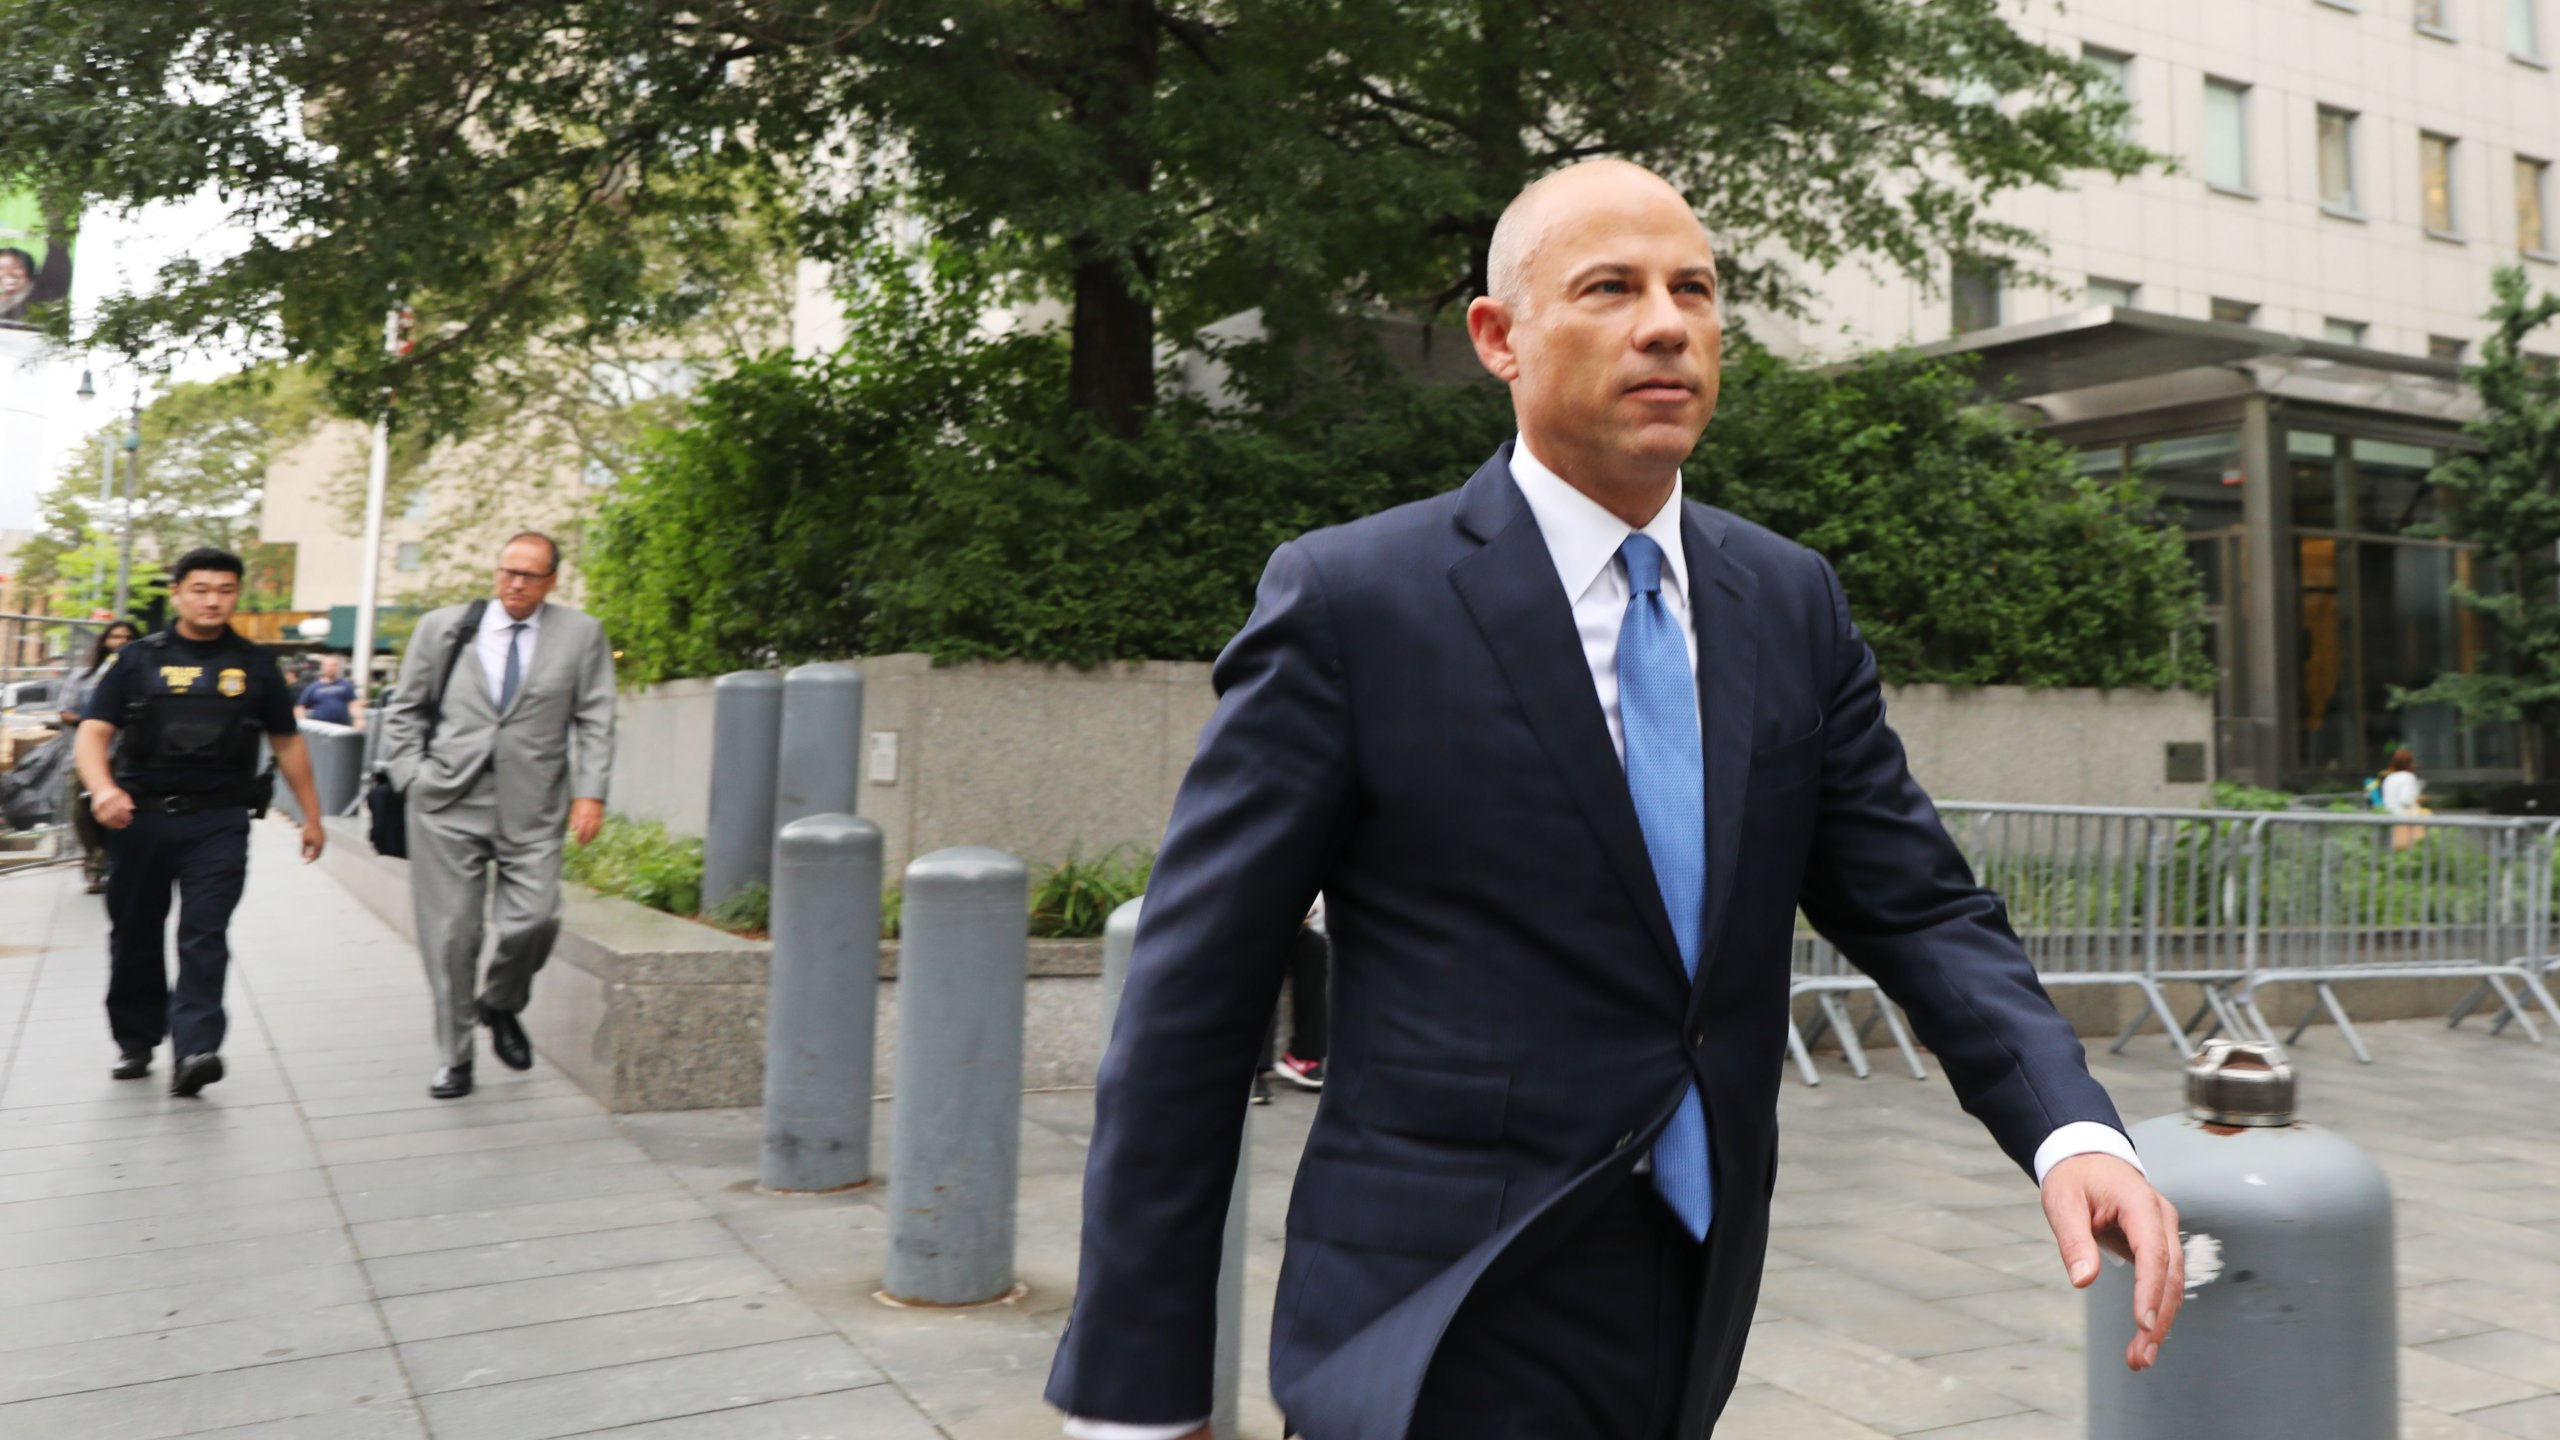 Michael Avenatti walks out of a New York court house after a hearing on July 23, 2019 in New York City. (Credit: Spencer Platt/Getty Images)